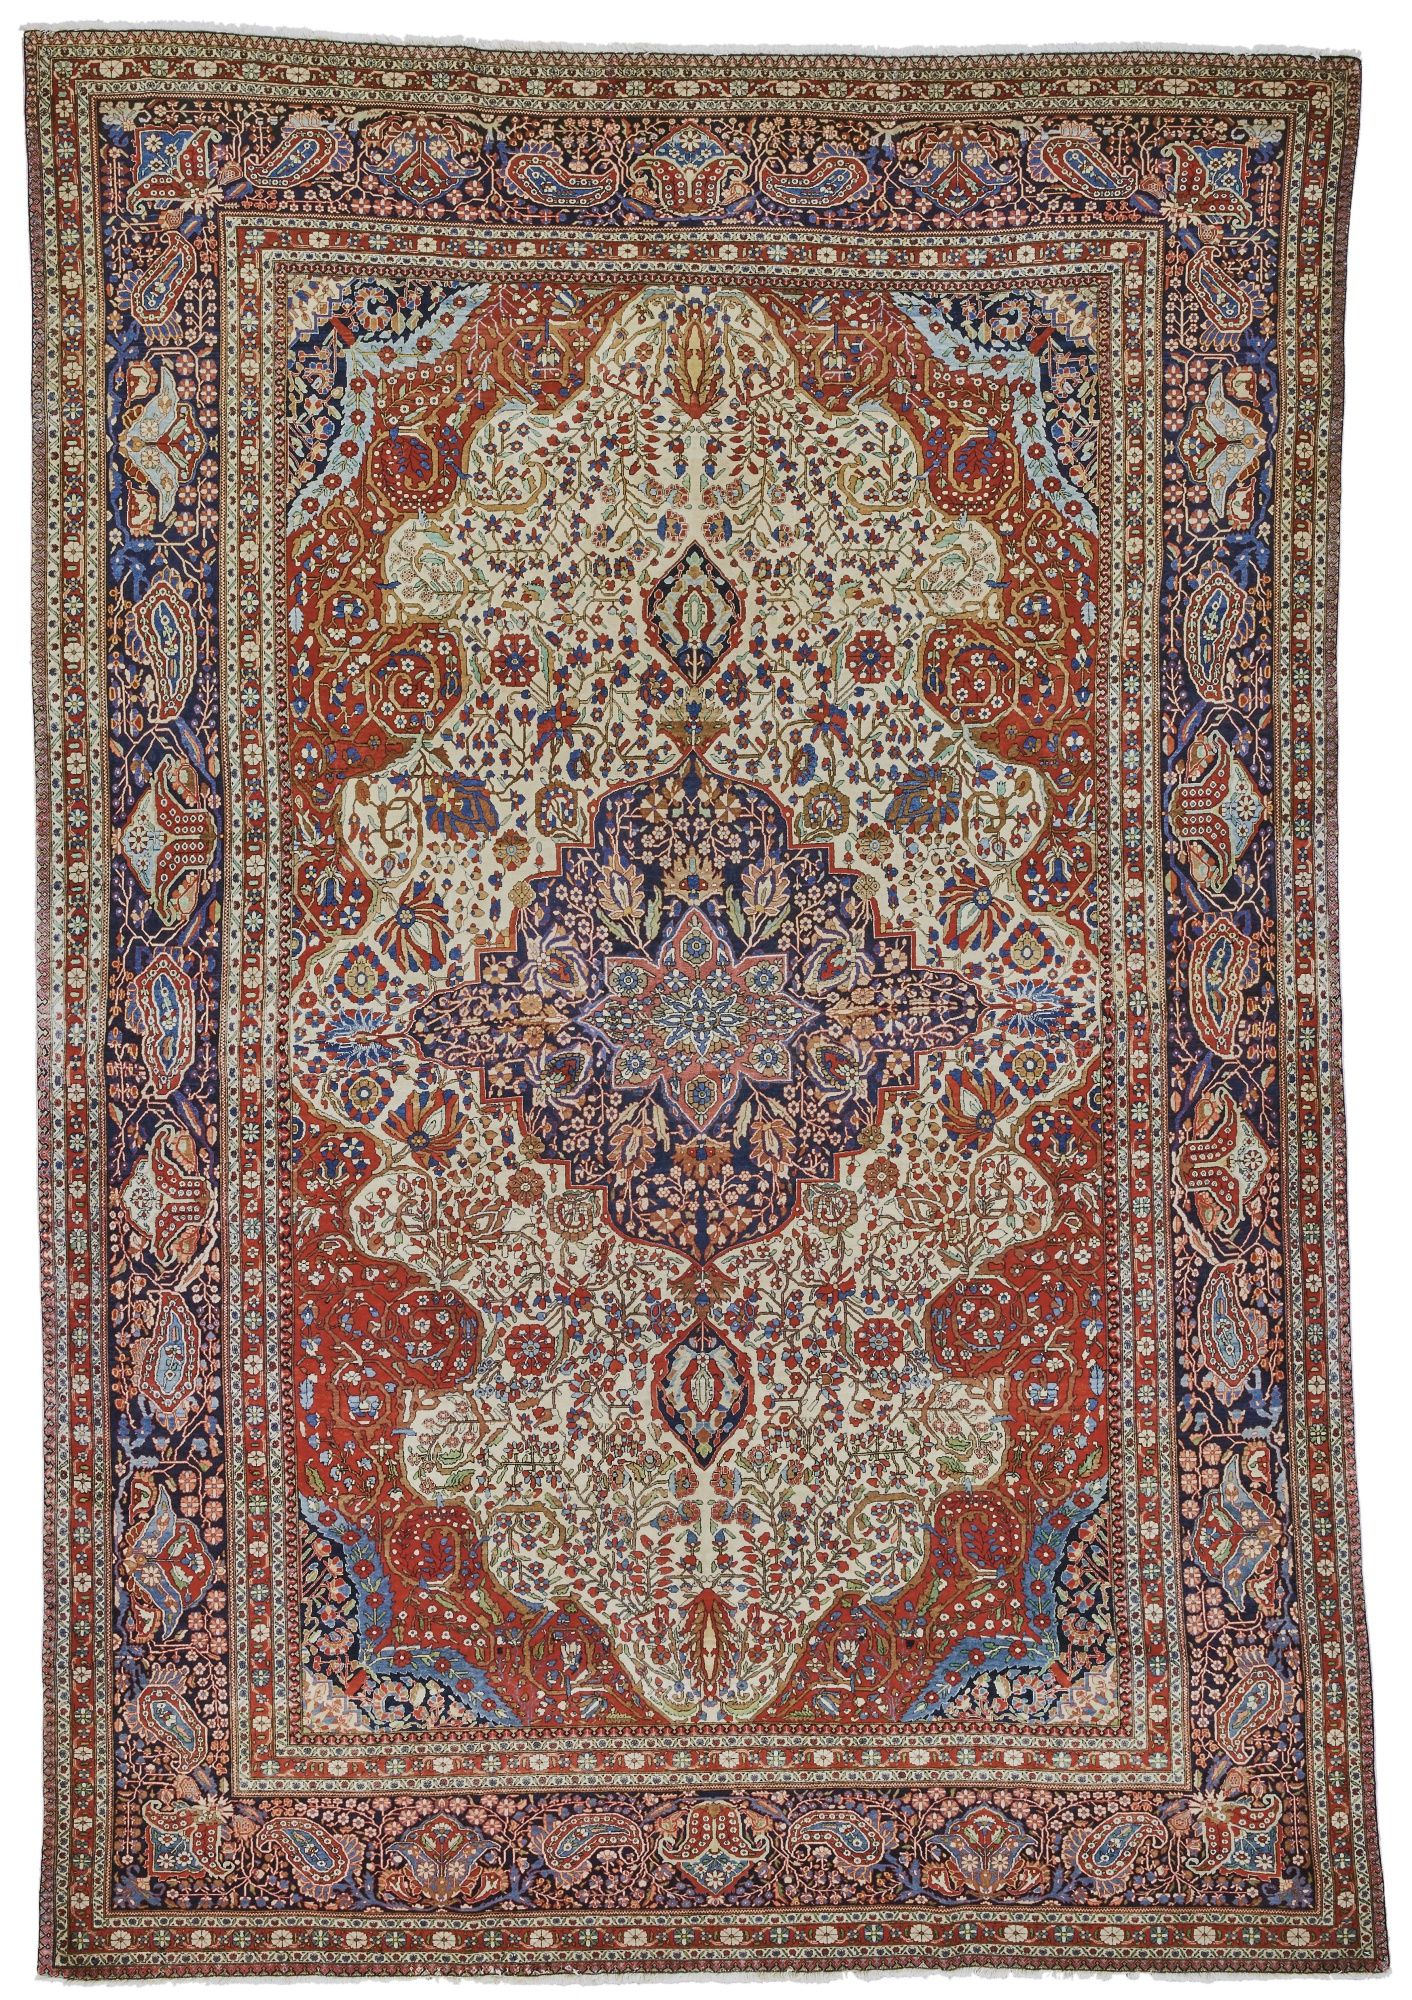 Kashan 'Mohtasham' carpet, Central Persia approximately